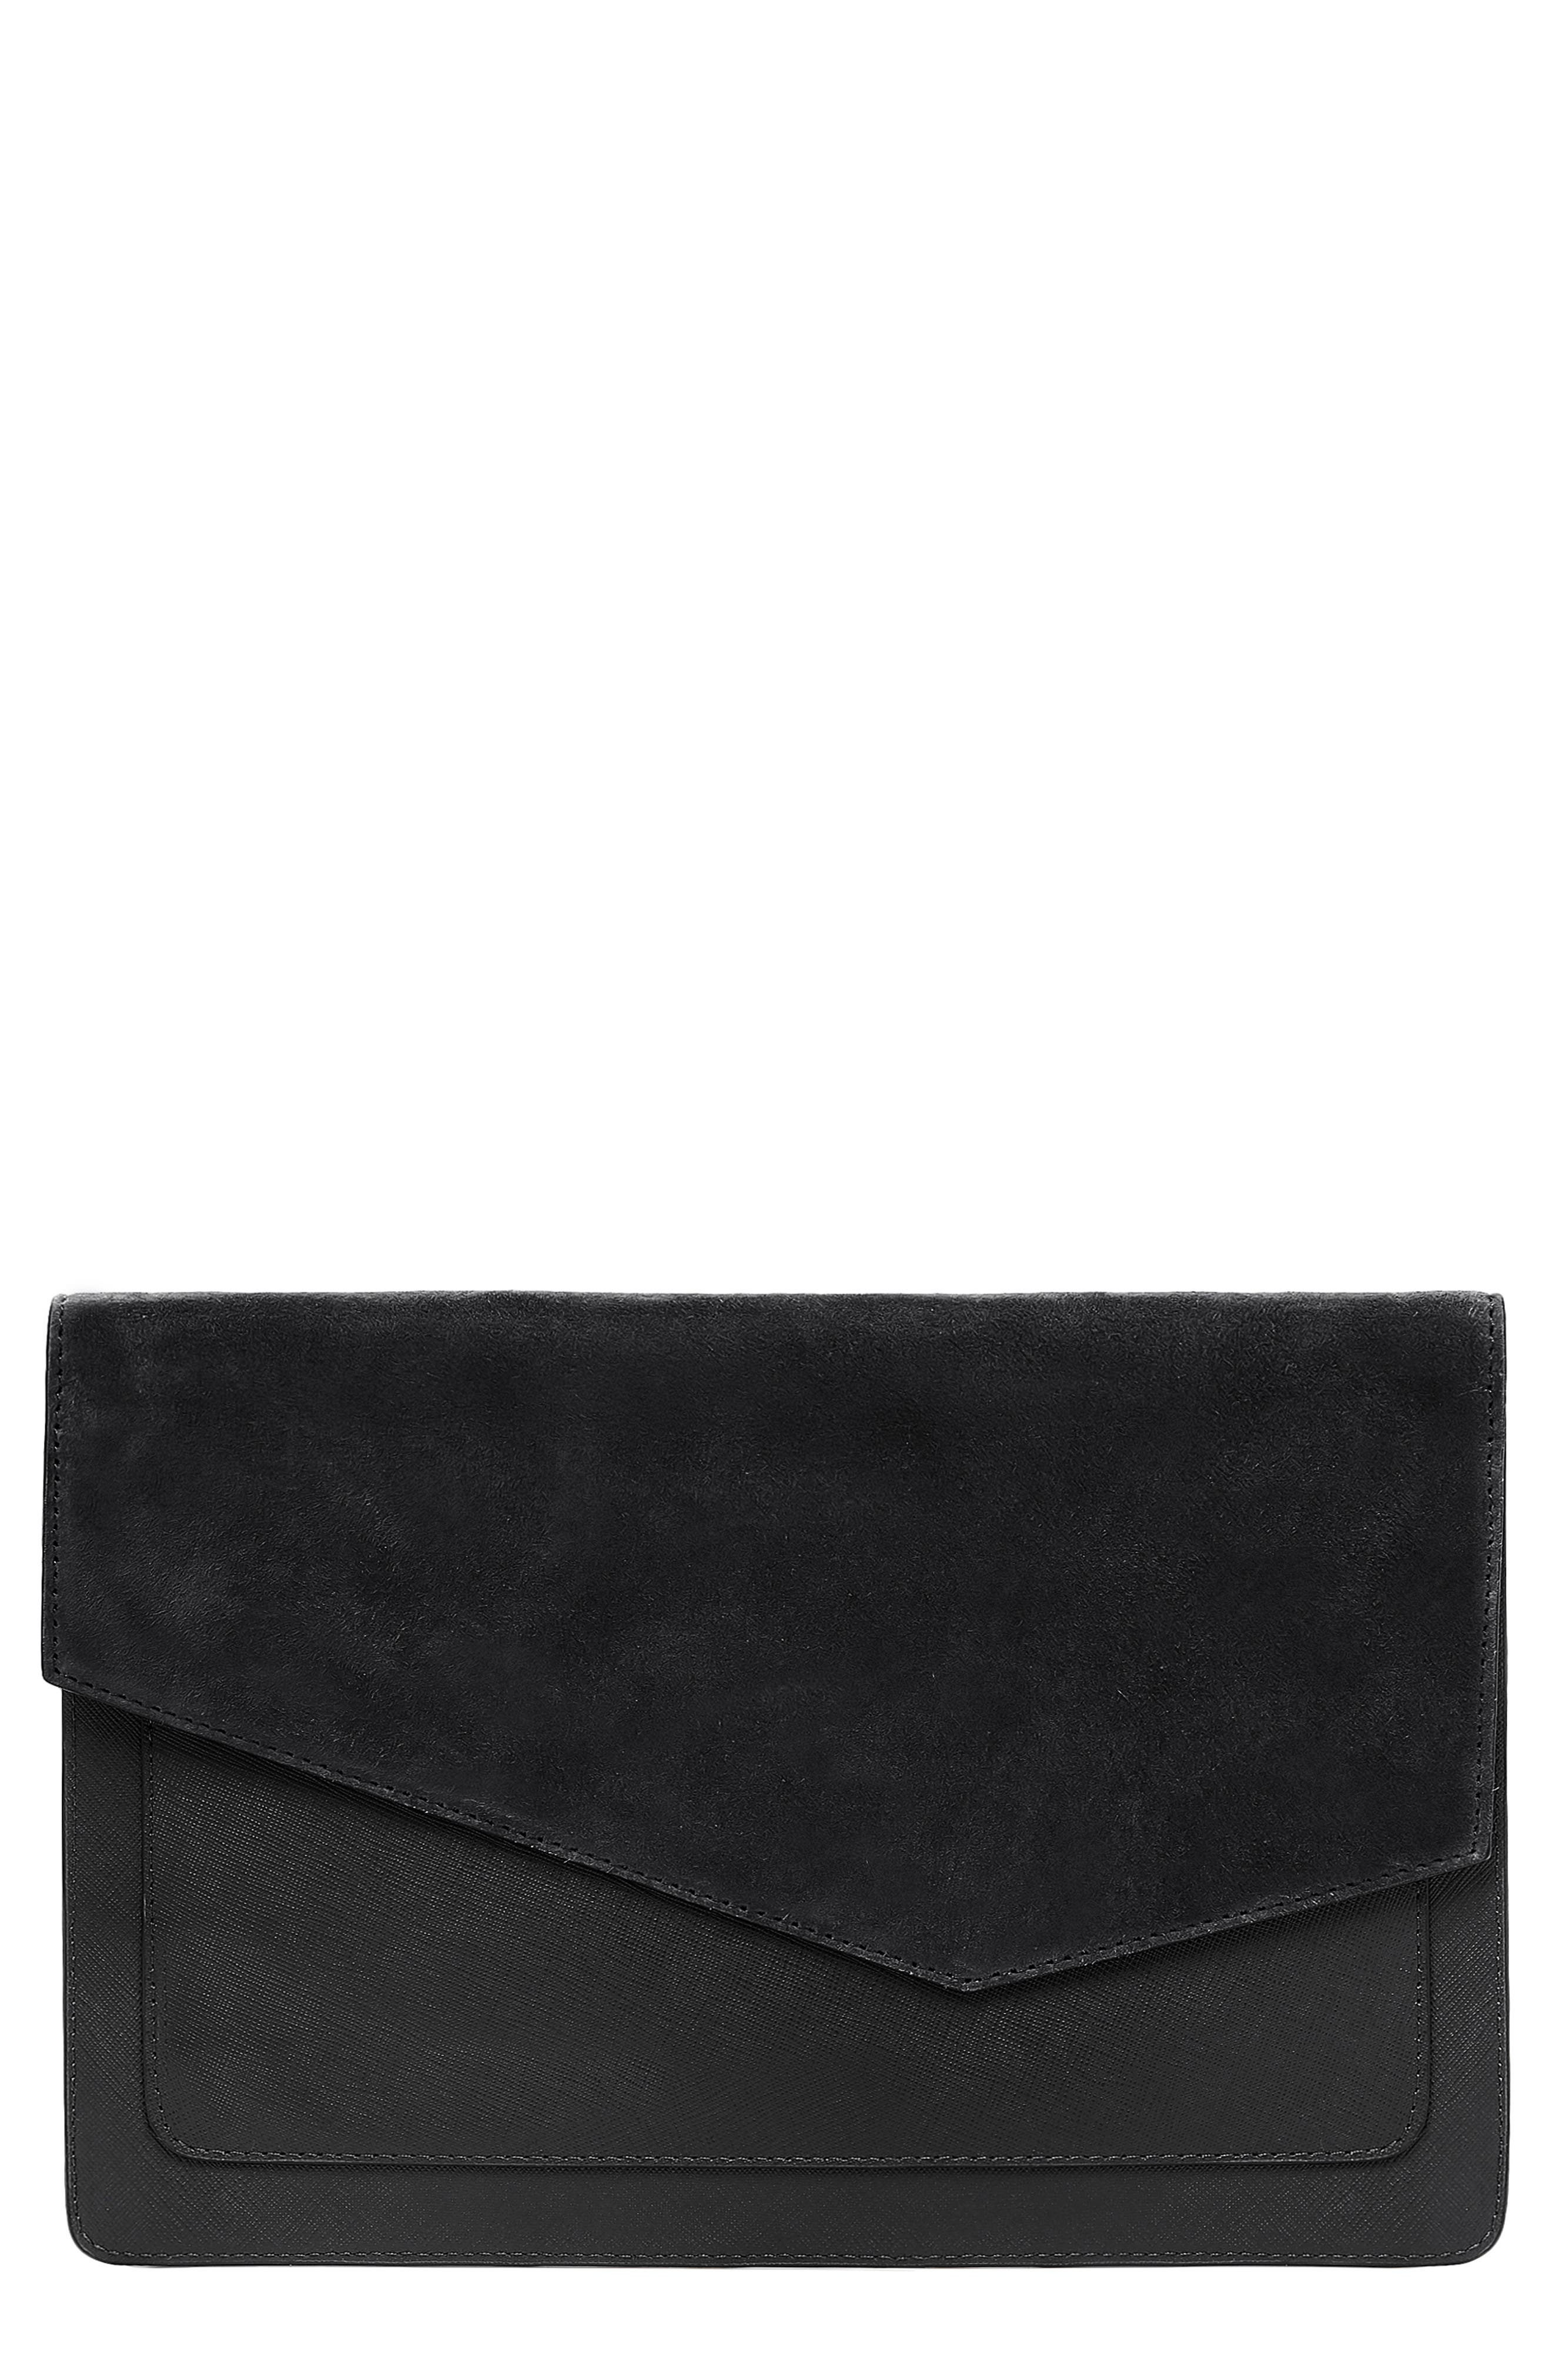 Cobble Hill Calfskin Leather Flap Clutch,                             Main thumbnail 1, color,                             001